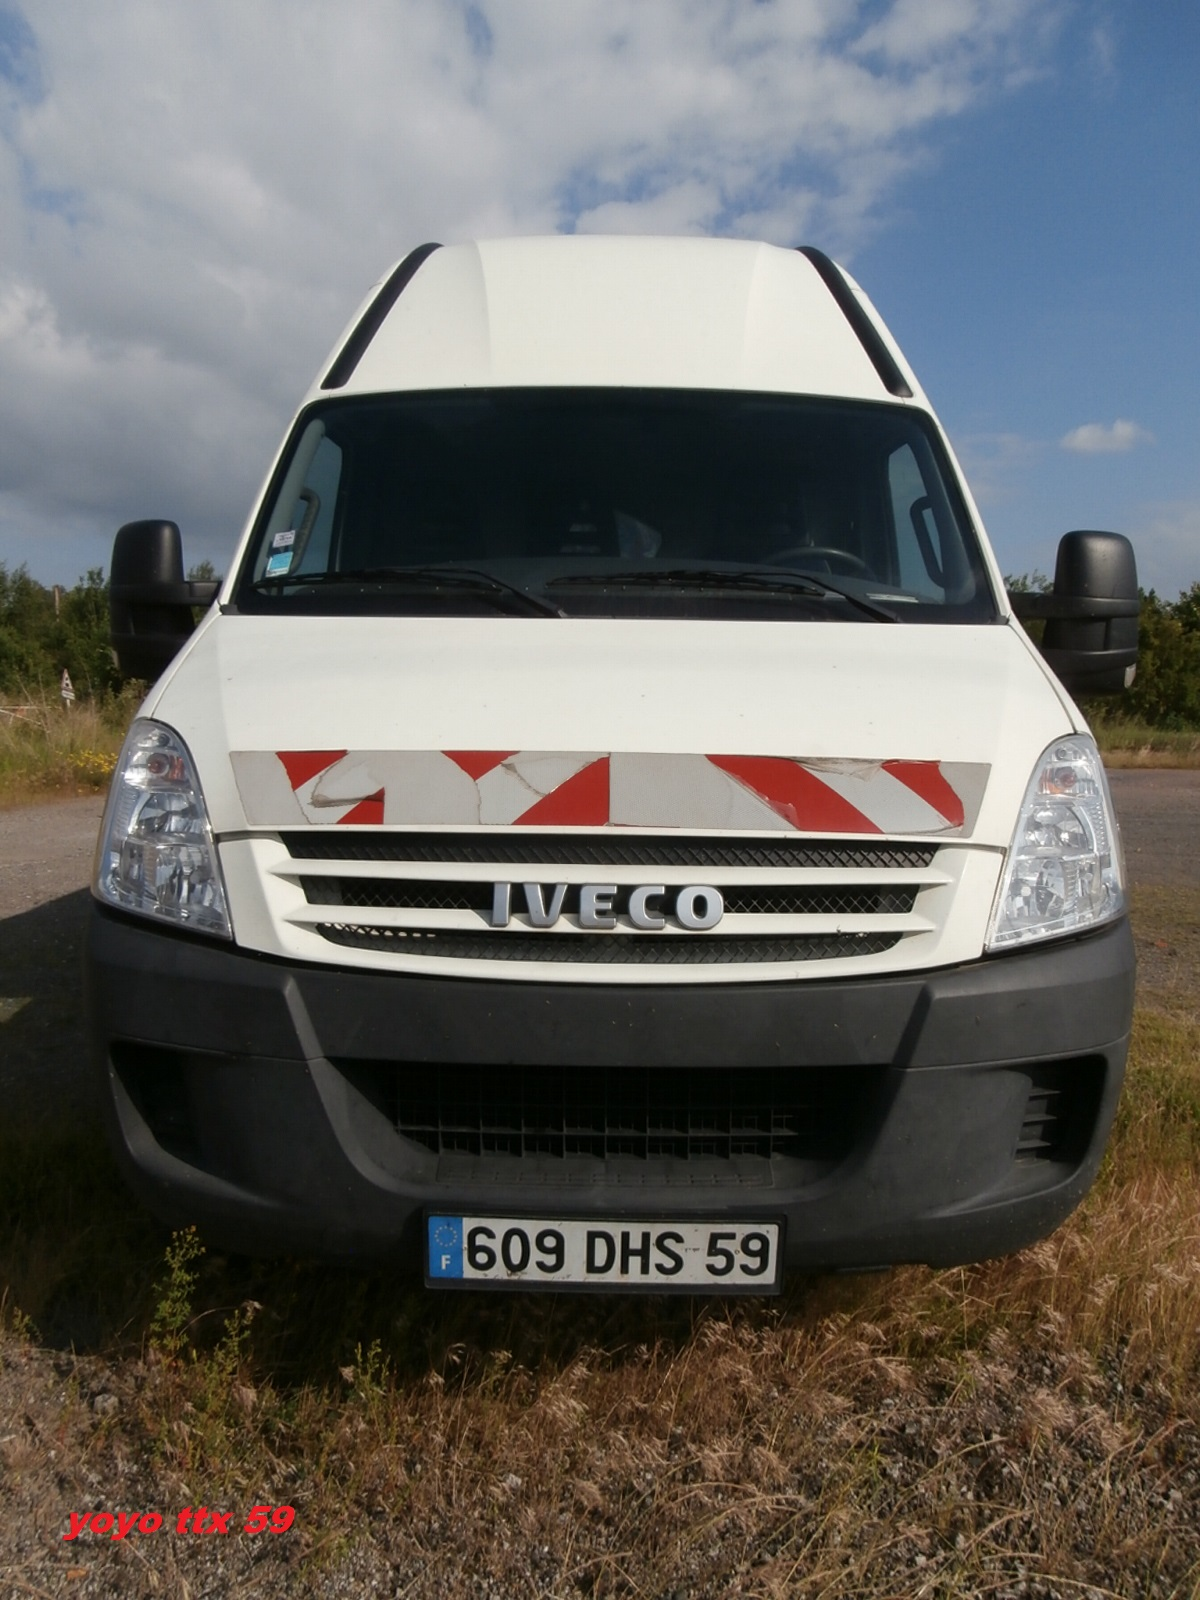 SNCF Iveco Daily 609DHS59=2.JPG